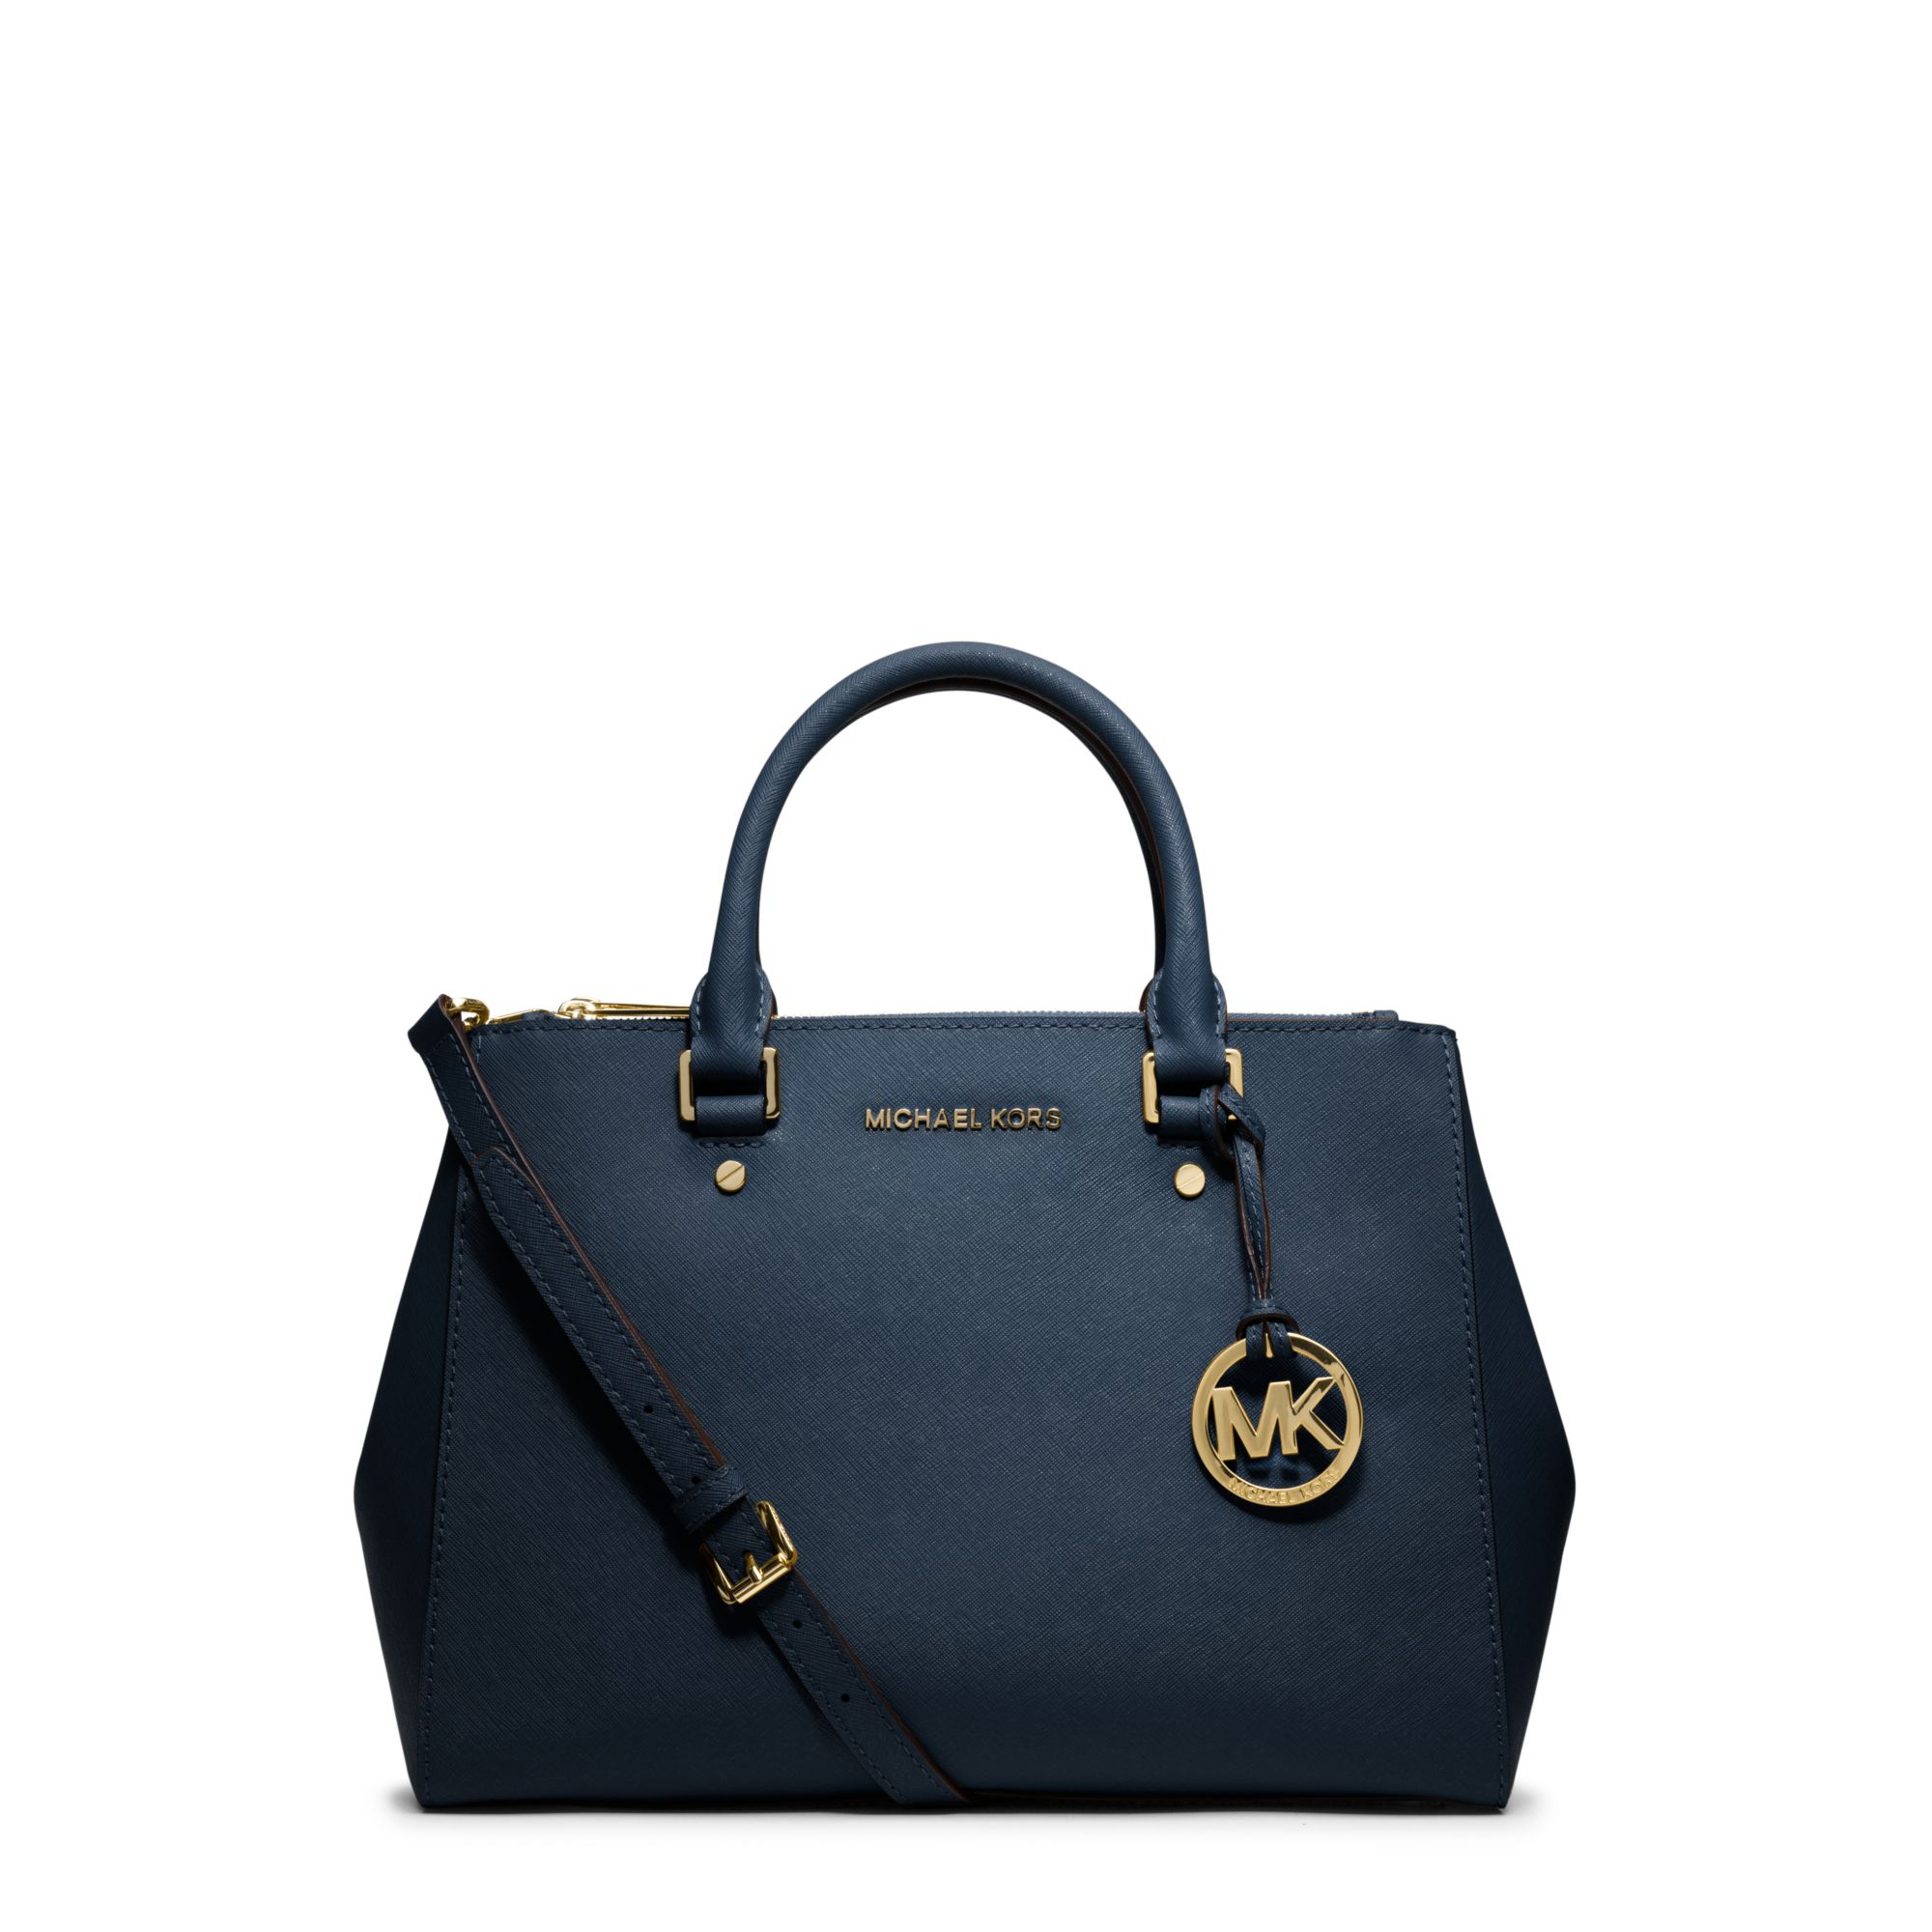 michael kors sutton medium saffiano leather satchel in. Black Bedroom Furniture Sets. Home Design Ideas